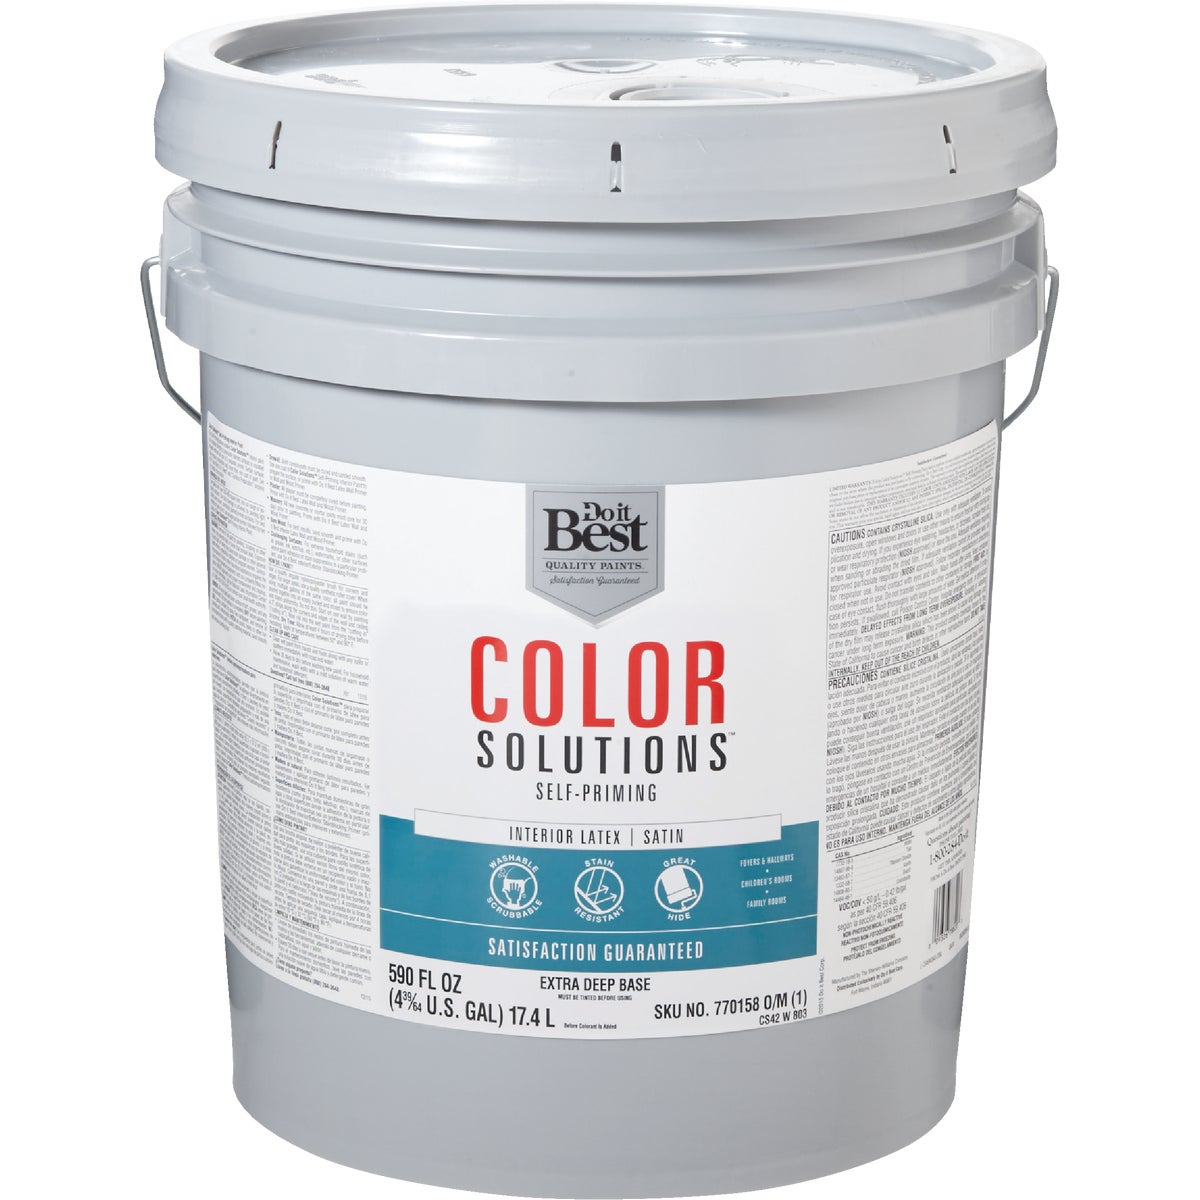 INT SAT EX DEEP BS PAINT - CS42W0803-20 by Do it Best